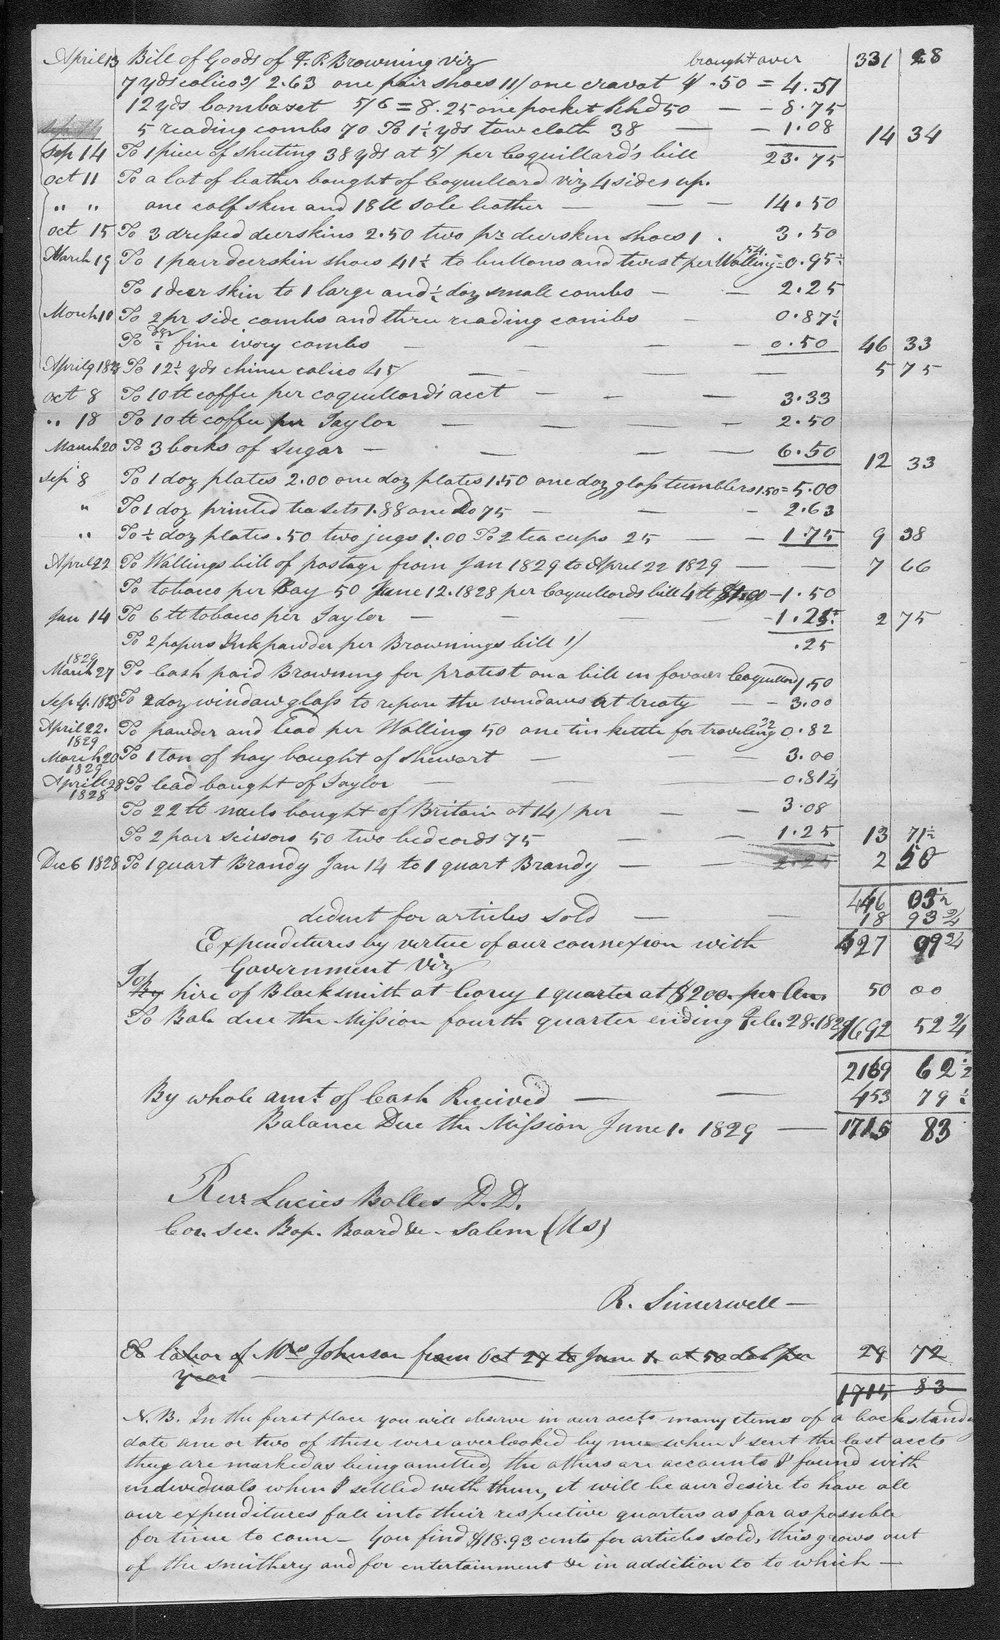 Expenditures and receipts of the Carey Mission first quarter which includes march april and may 1829 - 2